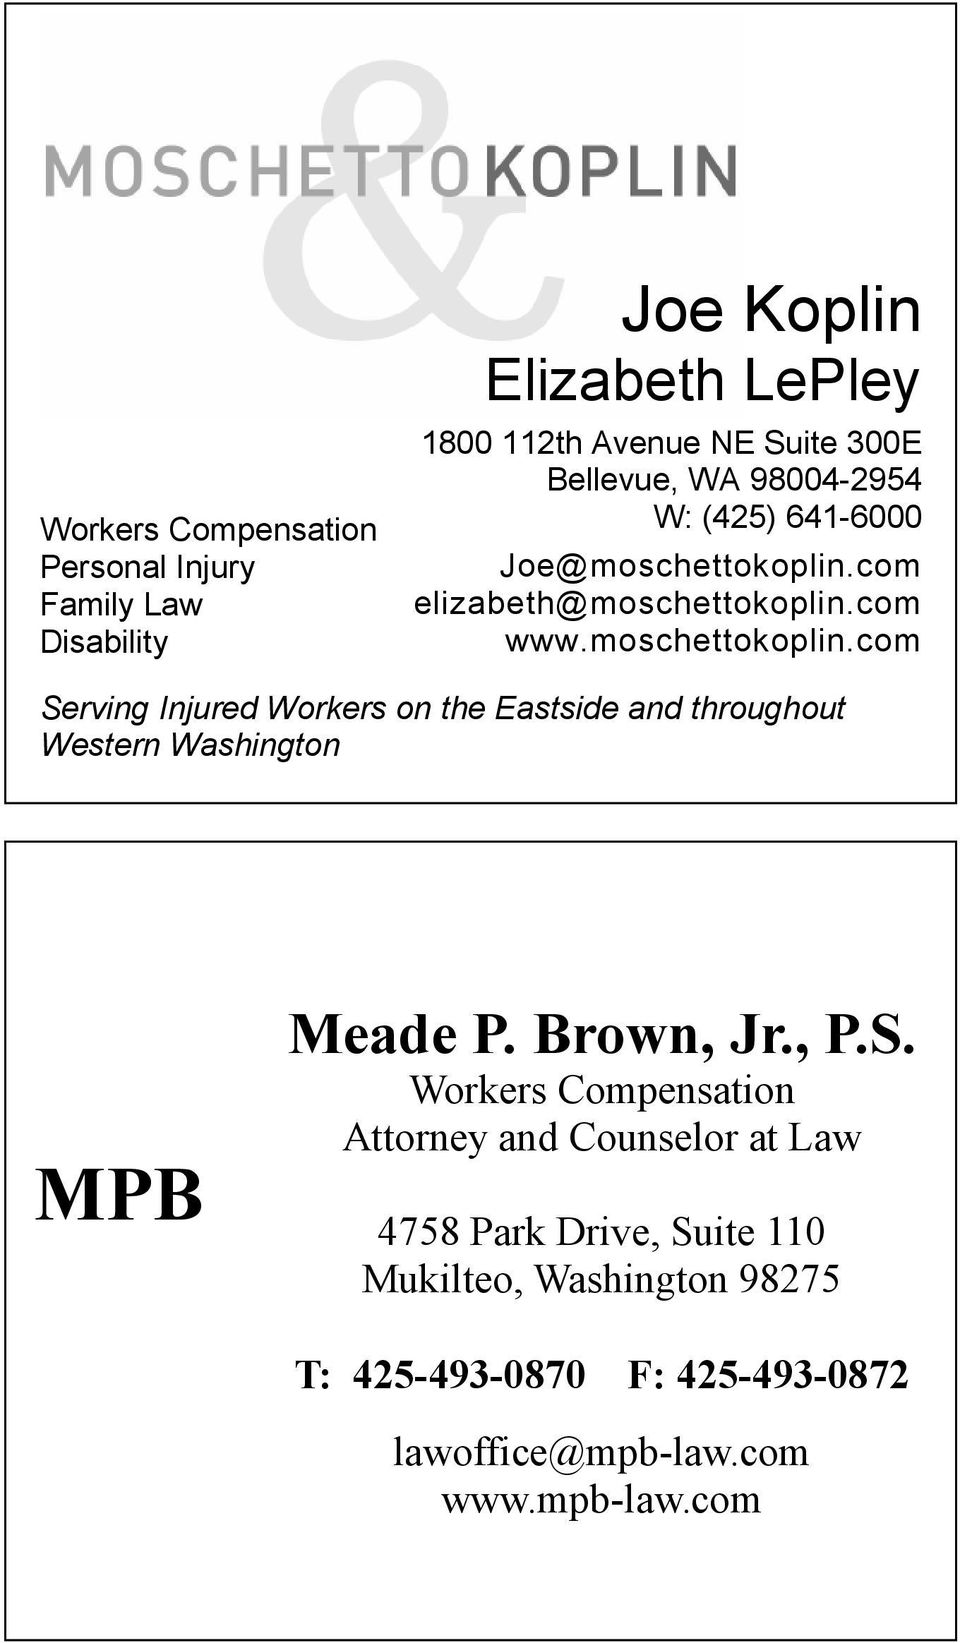 com elizabeth@moschettokoplin.com www.moschettokoplin.com Serving Injured Workers on the Eastside and throughout Western Washington MPB Meade P.